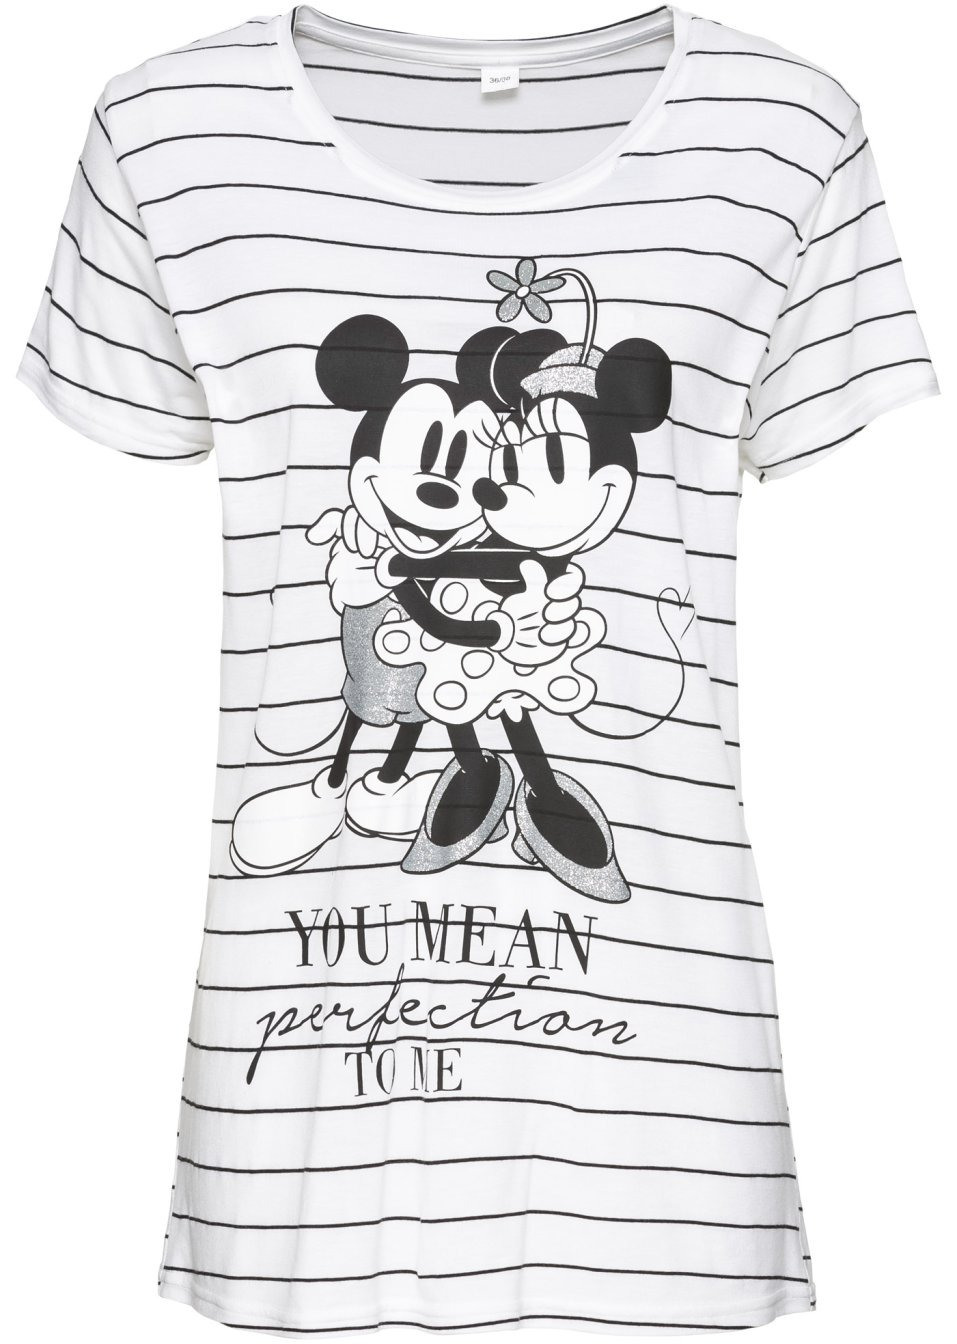 trendstarkes shirt in streifenoptik mit mickey mouse print wei schwarz gestreift. Black Bedroom Furniture Sets. Home Design Ideas